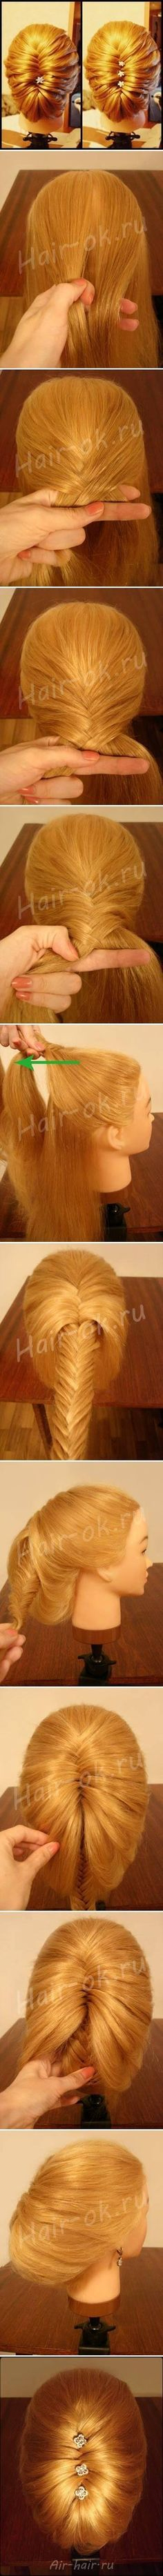 hair how to elegant fish braid updo Pretty Hairstyles, Girl Hairstyles, Braided Hairstyles, Hair Dos, Gorgeous Hair, Hair Designs, Prom Hair, Hair Hacks, Updos